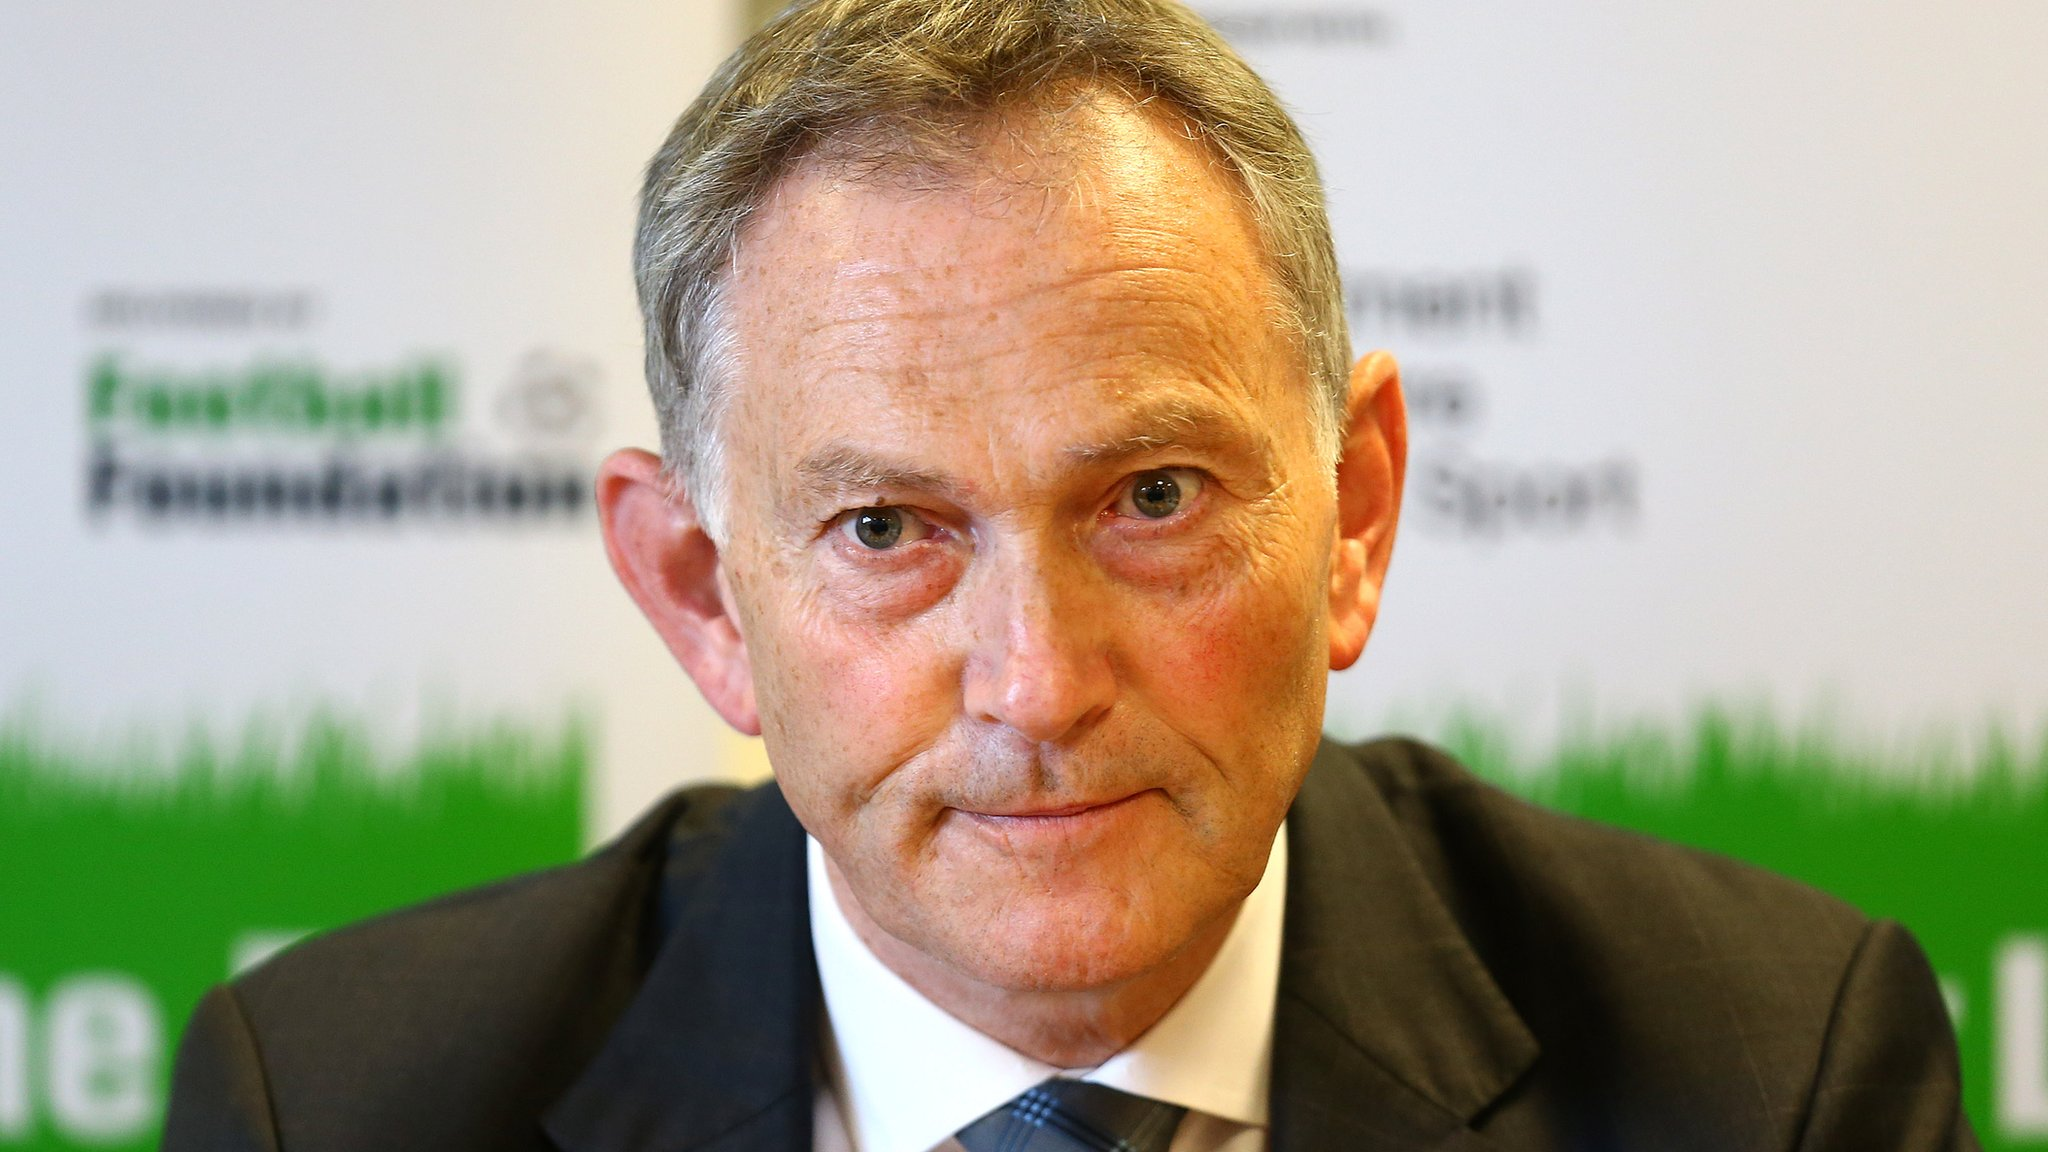 Premier League clubs asked to pay £5m bonus for Scudamore